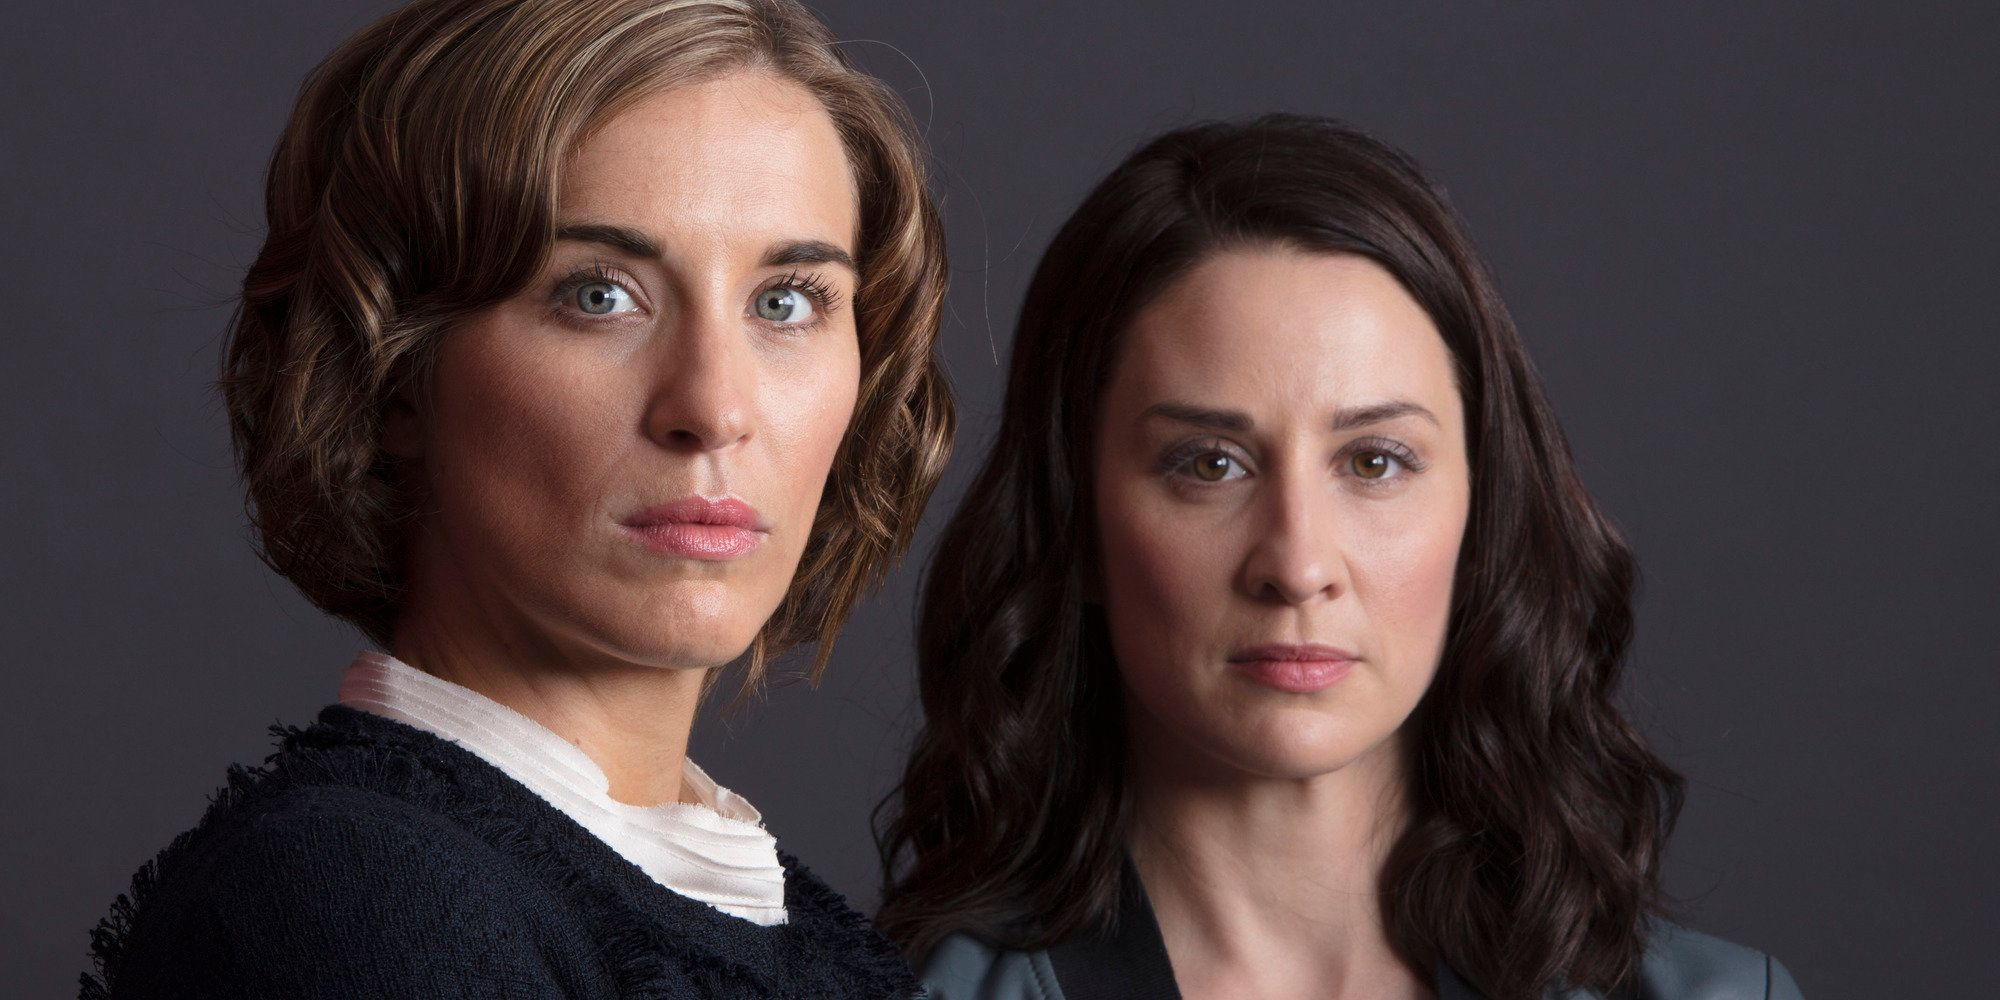 'The Replacement': BBC Drama (Vicky McClure, Morven Christie) Sees Maternity Leave Cover Take A Very Dark Turn